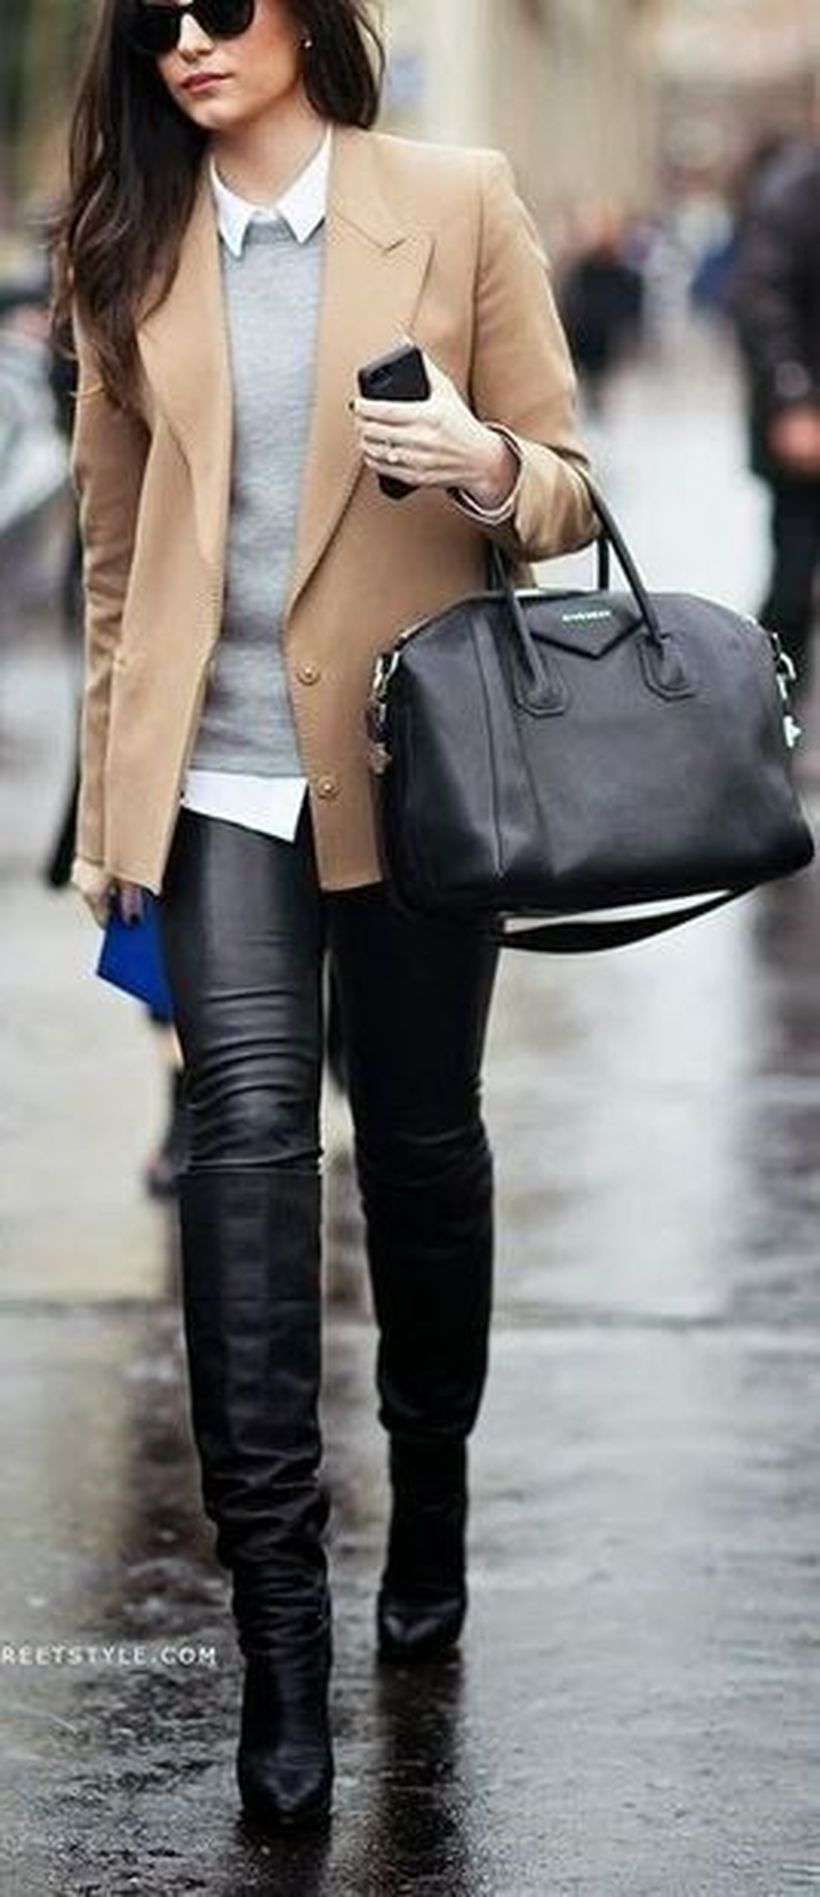 Best casual fall night outfits ideas for going out 87 ...